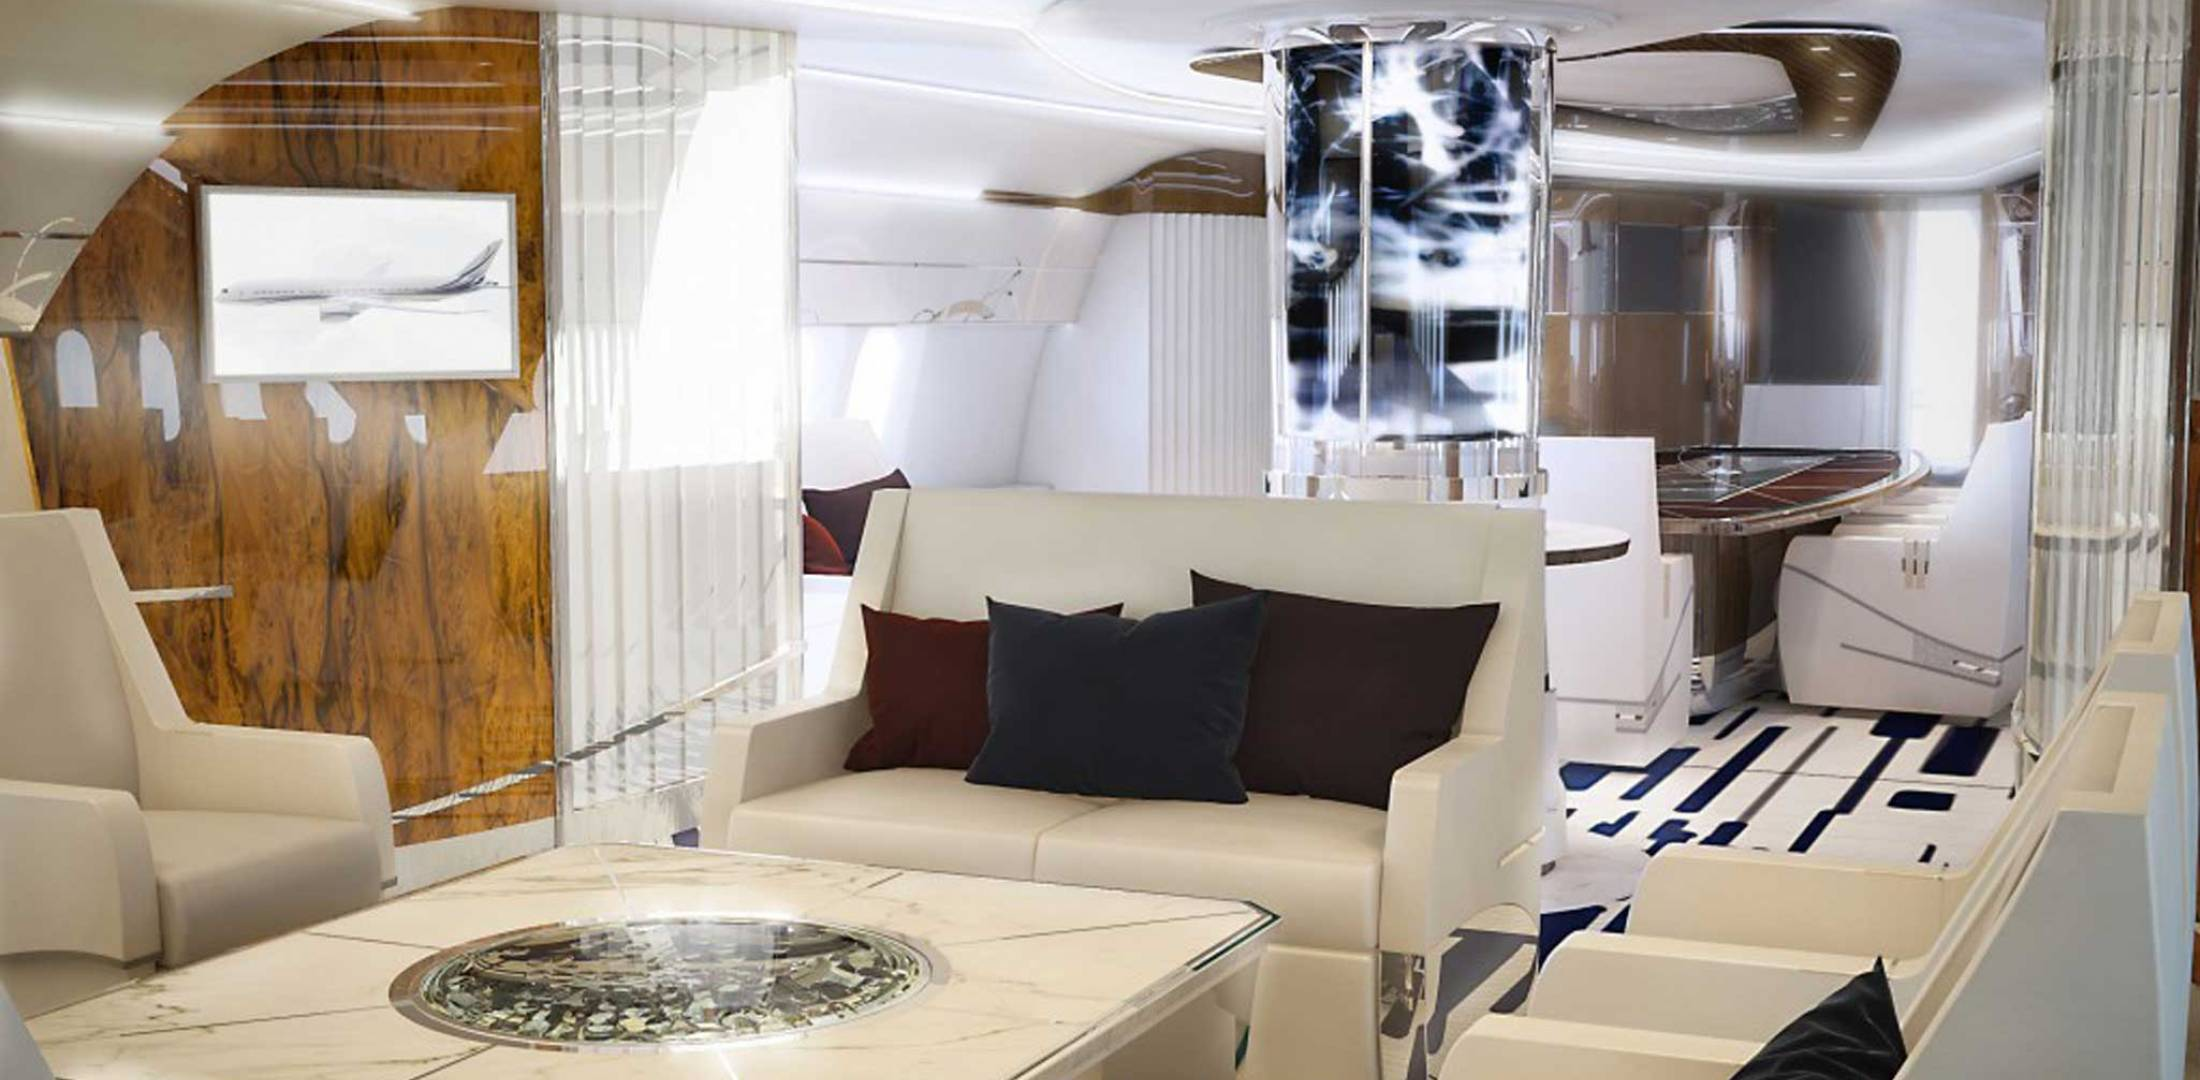 With the recent advances in technology and design aircraft concepts - Greenpoint Technologies Cabin